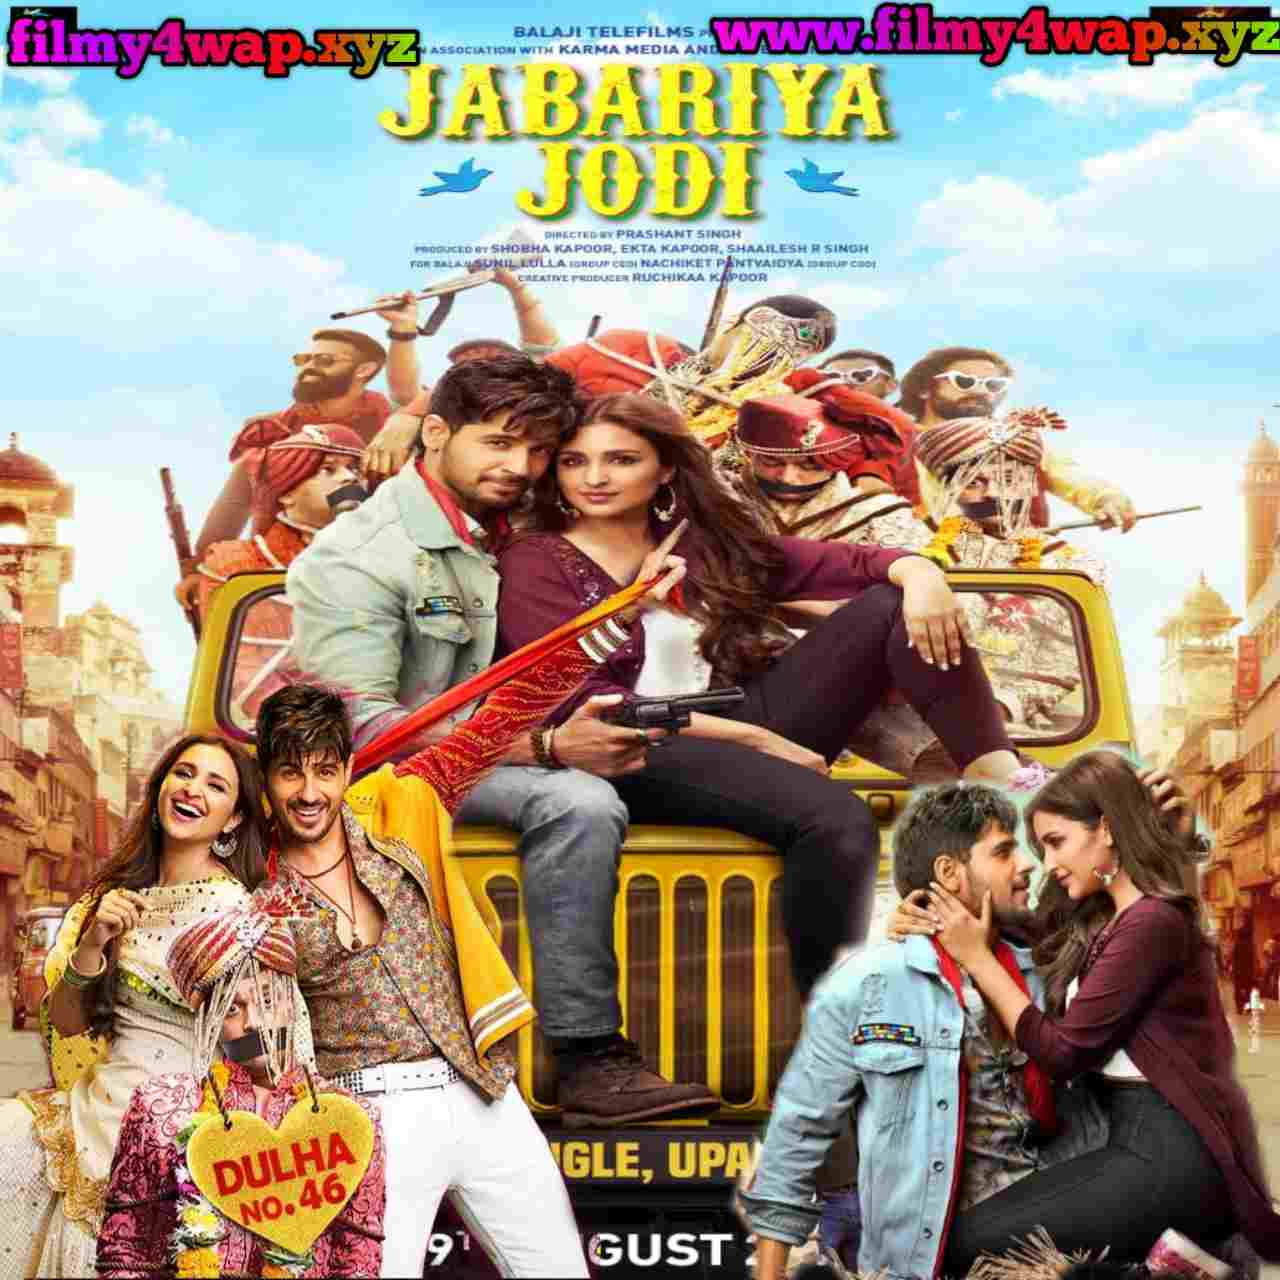 jabariya-jodi-2019-bollywood-full-movie-hd-450mb-800mb-1gb-2-2gb